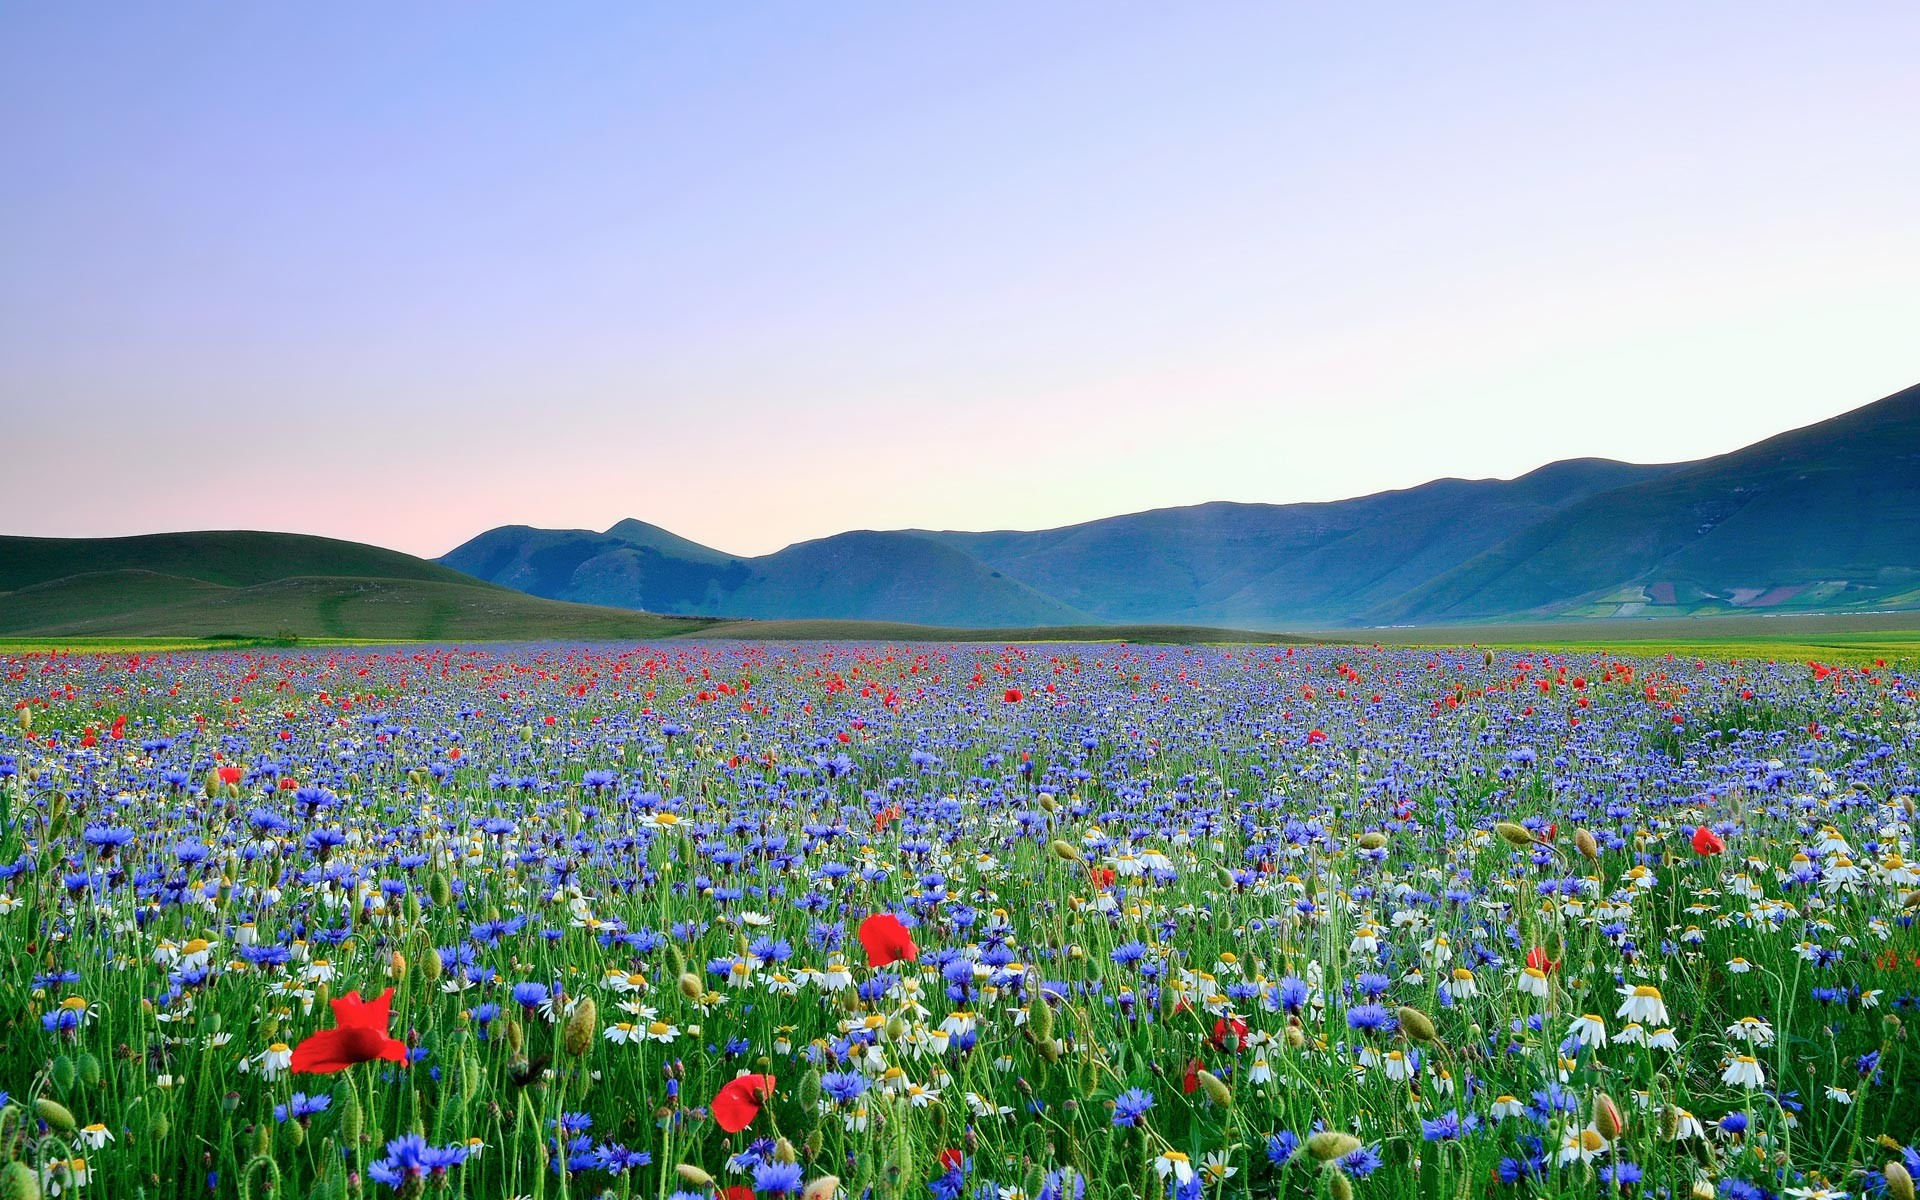 1920x1200 Summer Field of Flowers Wallpaper HD.